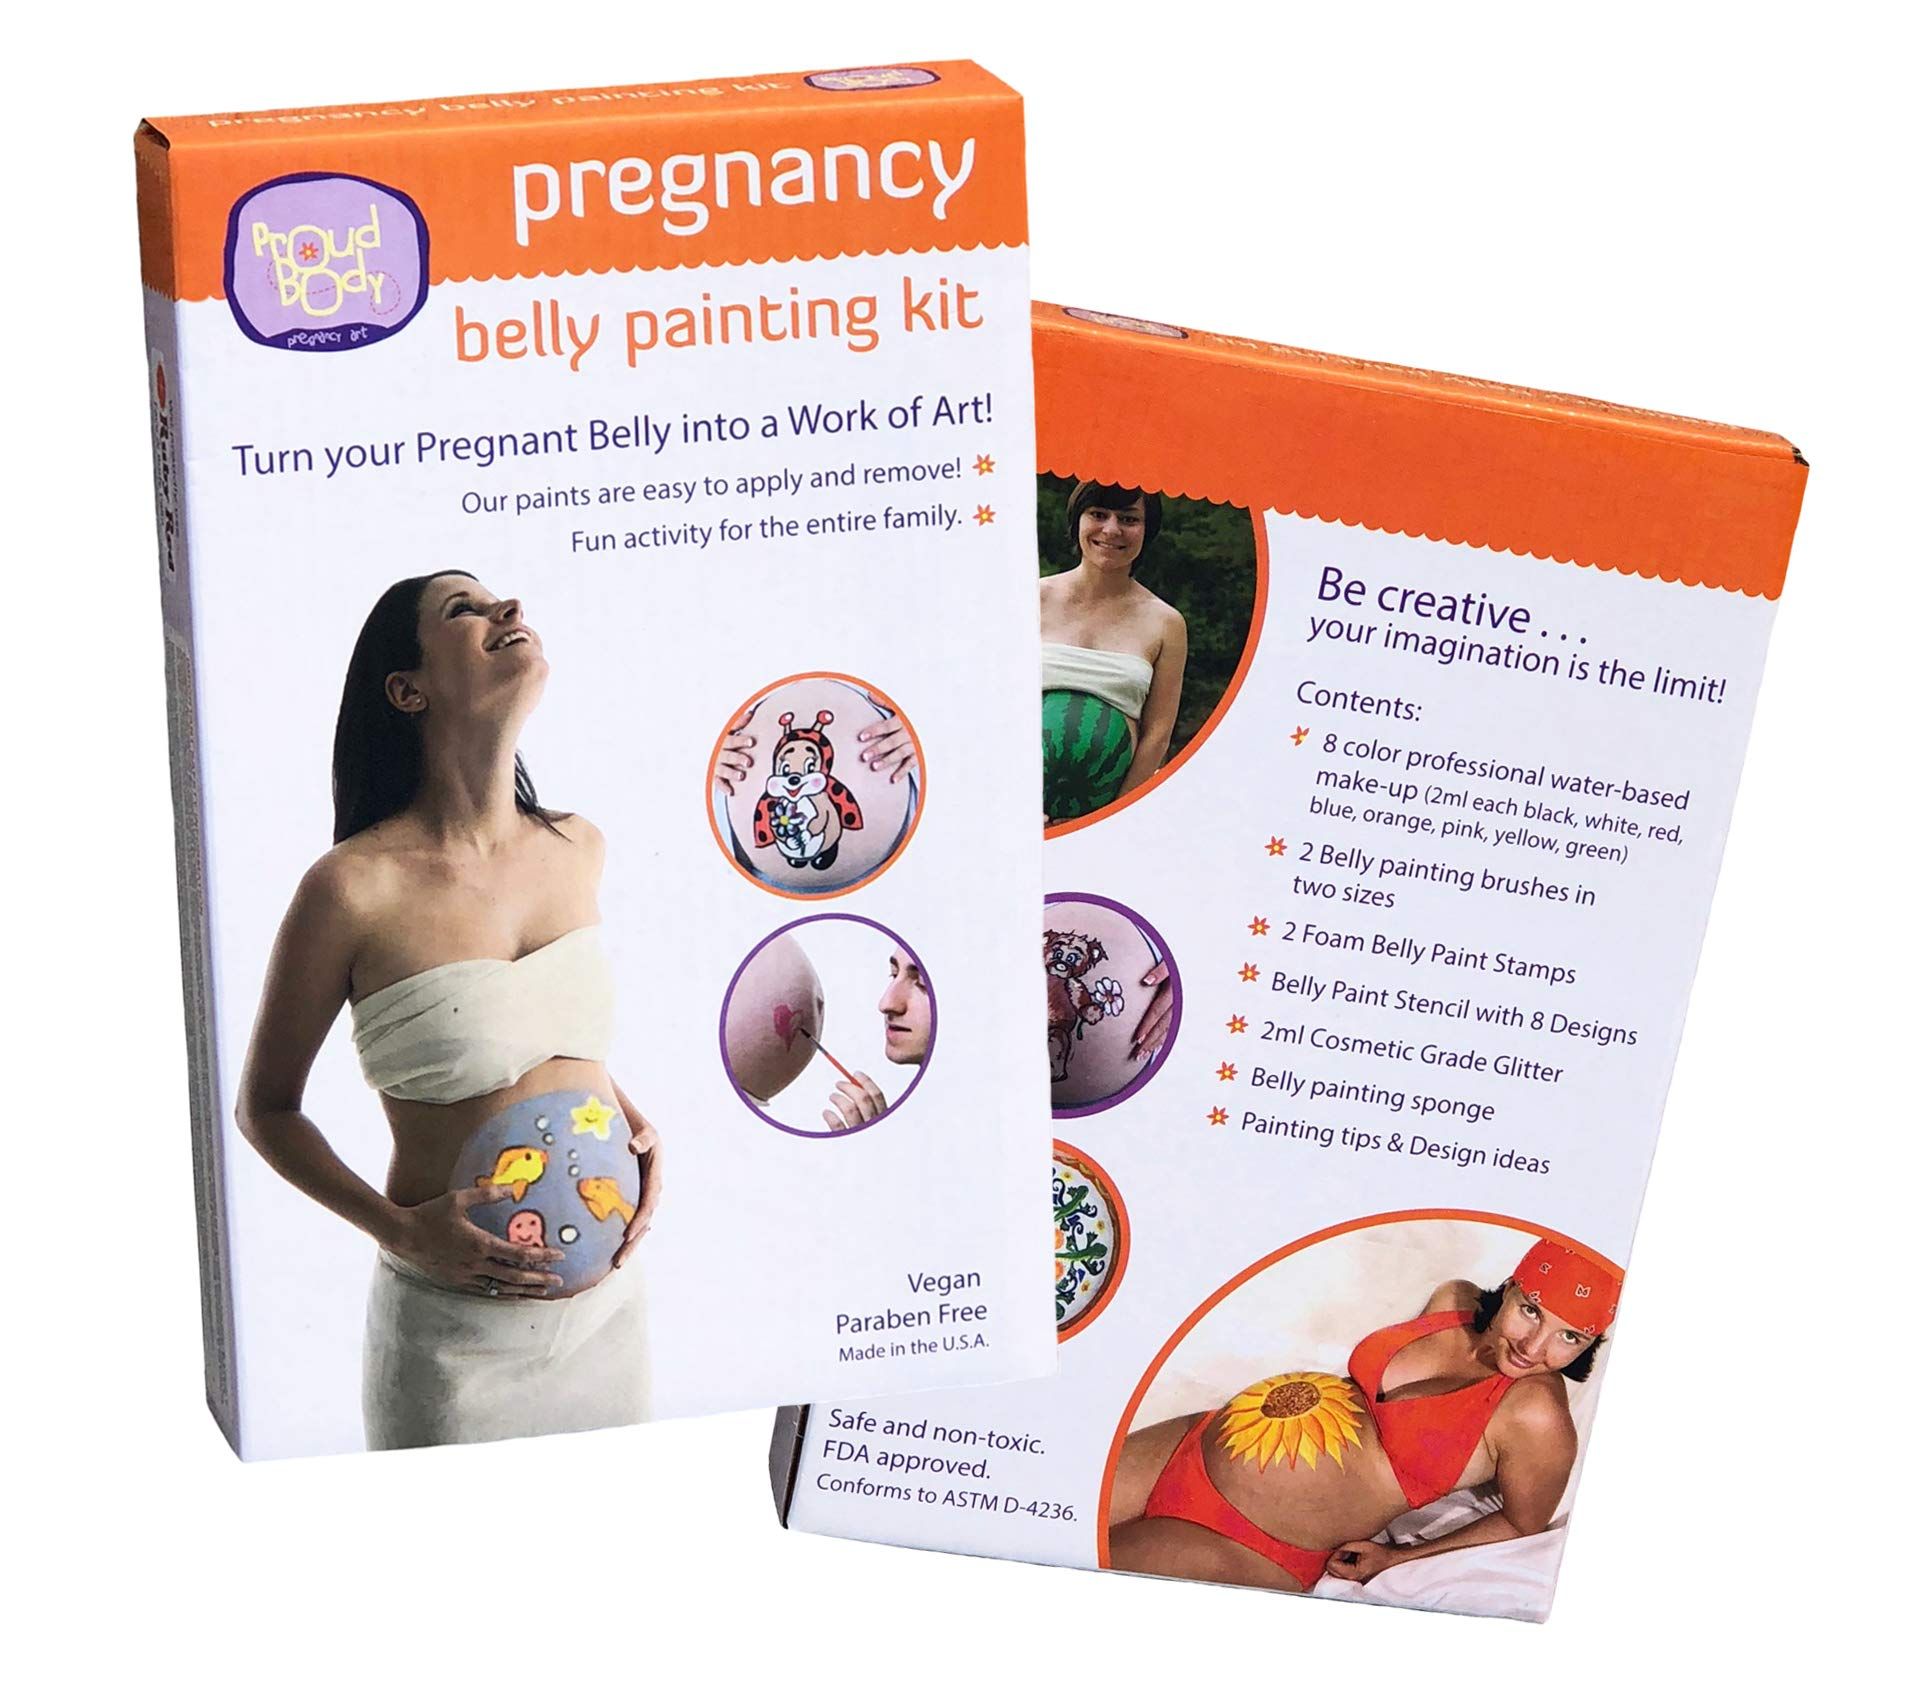 4e92b728a4e Amazon.com: ProudBody Pregnancy Belly Painting Kit | Featuring Stencils,  Glitter and Stamps: Baby